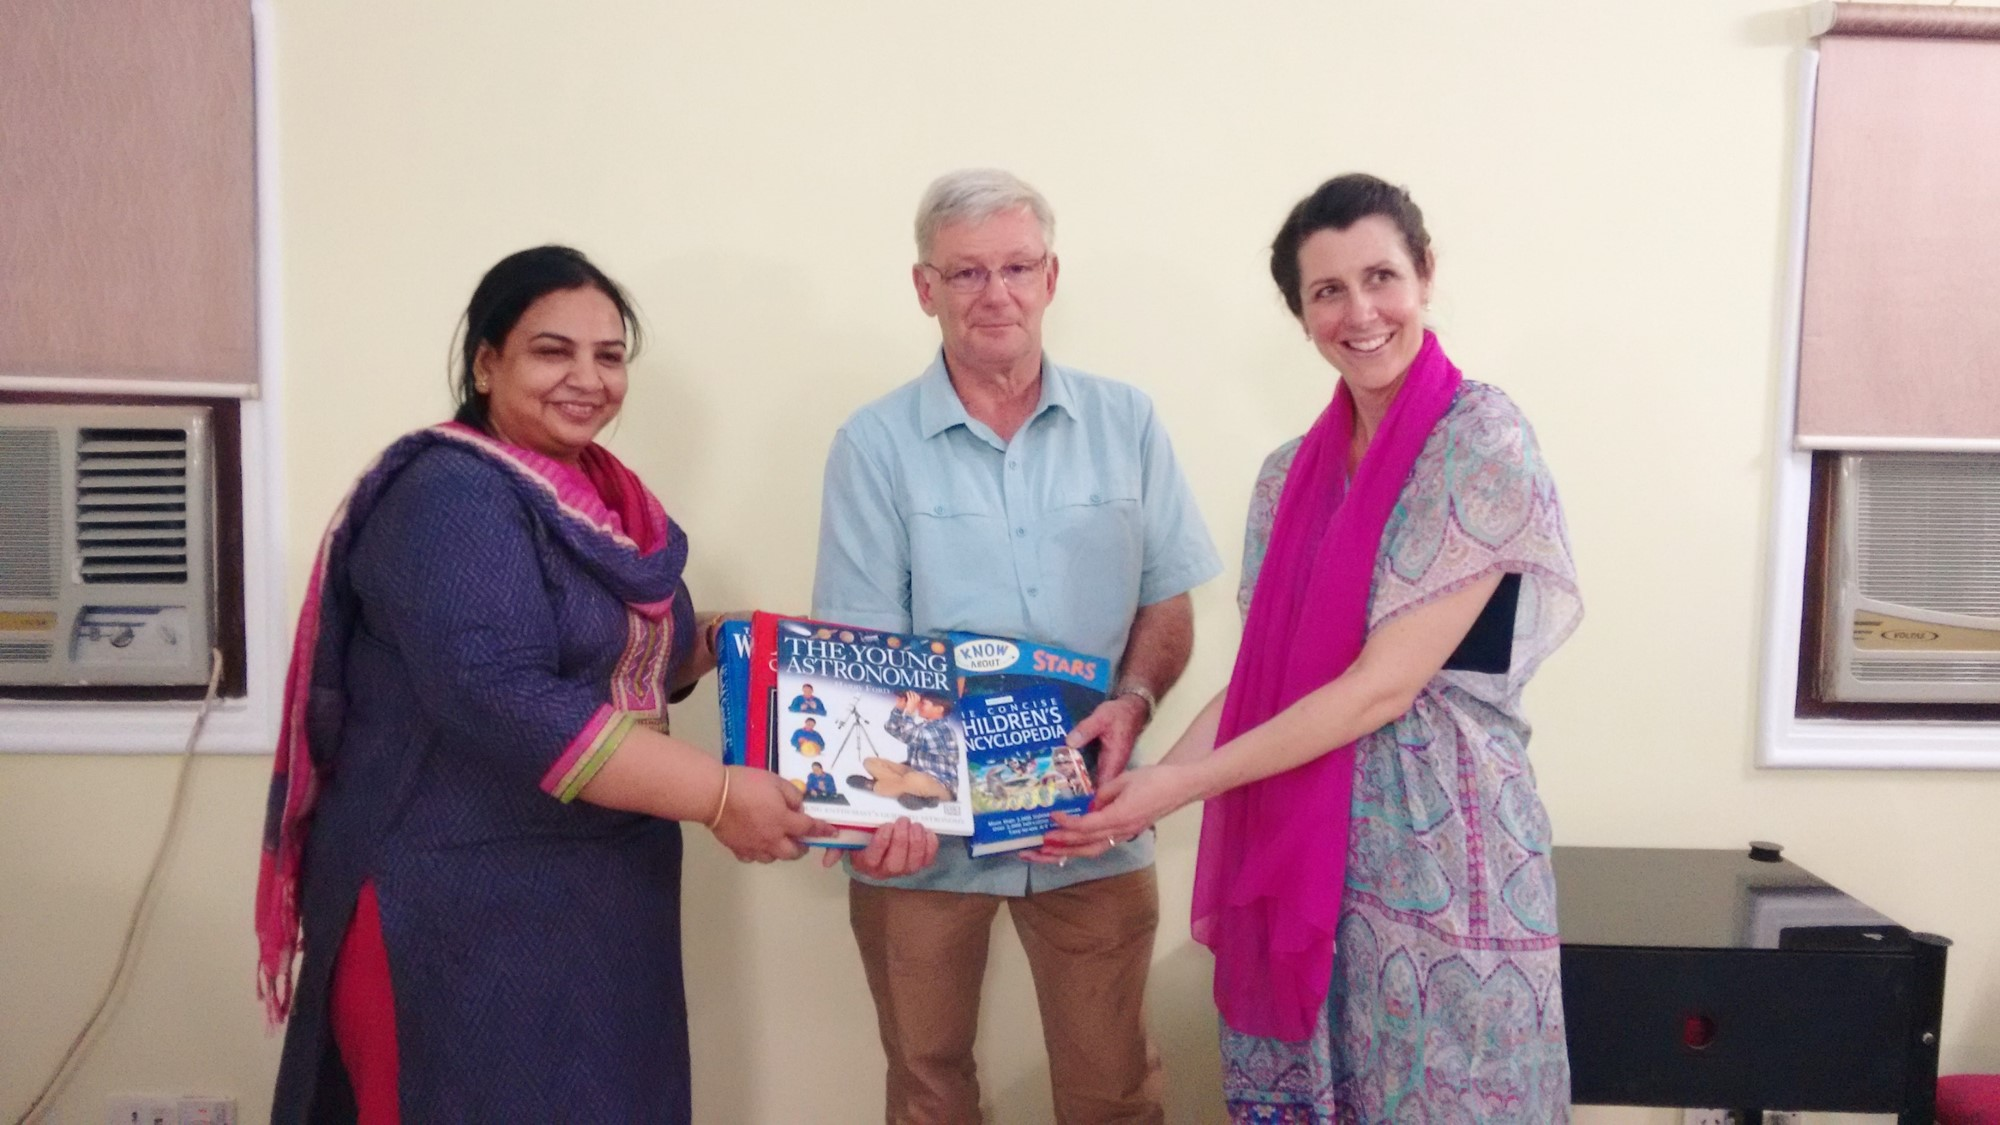 Long time Asha supporter and trustee of Gryphon School, Nigel Rees (center) and teacher Anna-Louise Griffiths (right) presenting books for Asha children